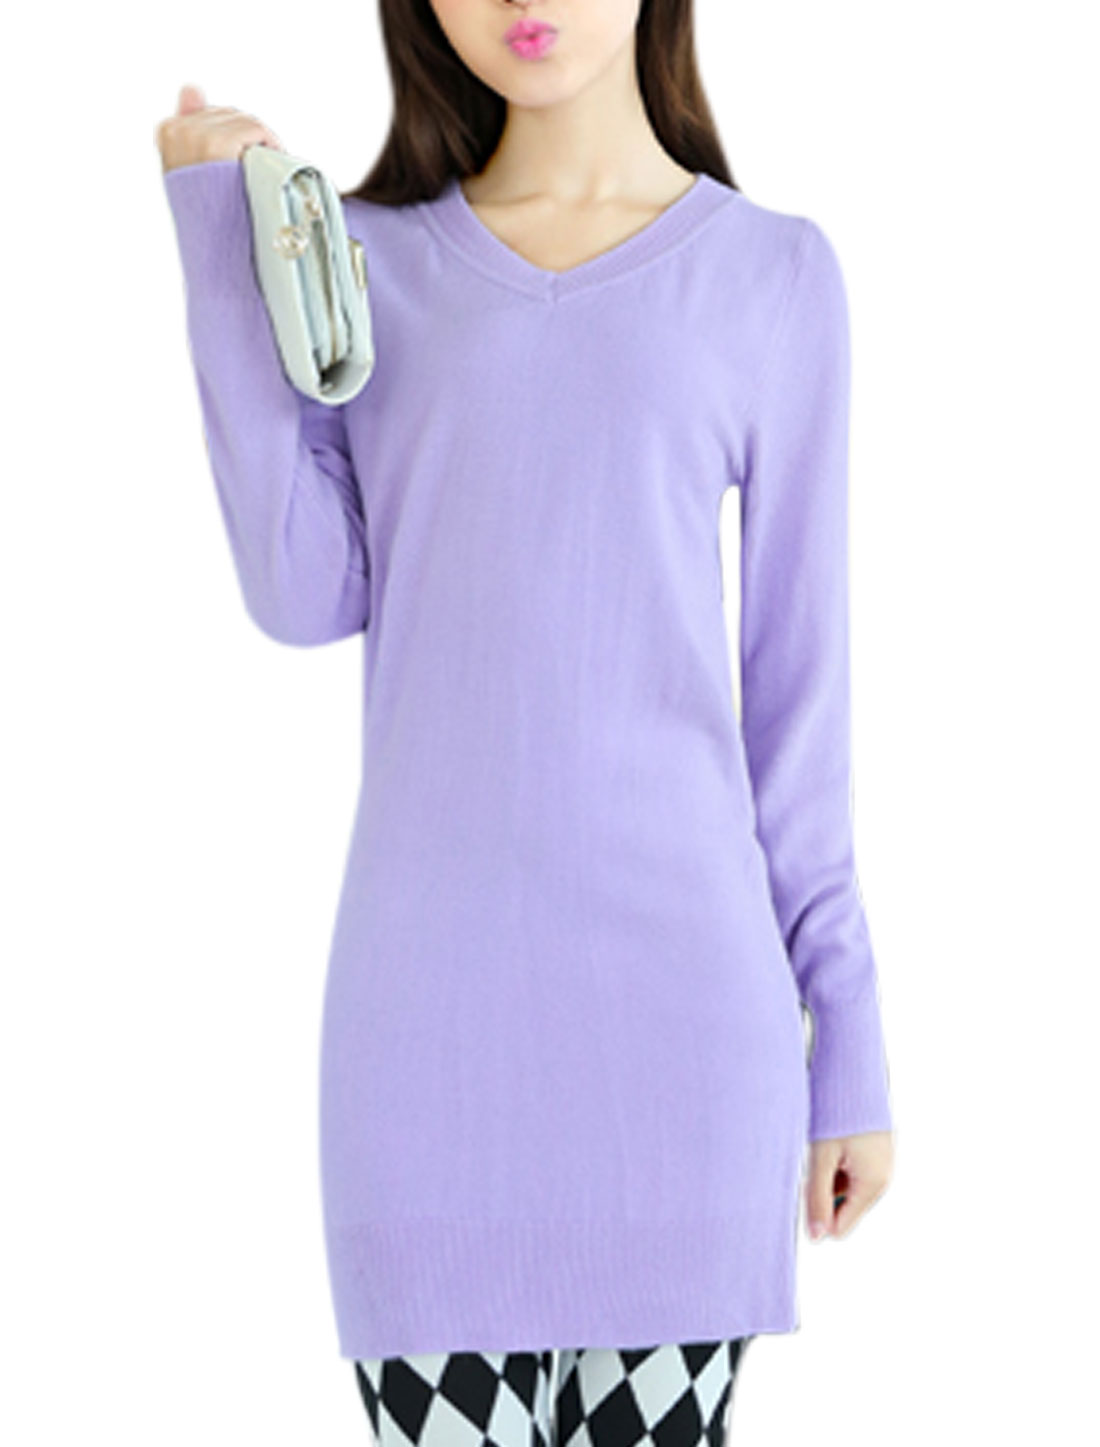 Lady Cozy Fit Long Sleeve Slipover Chic Light Purple Tunic Knit Shirt XS